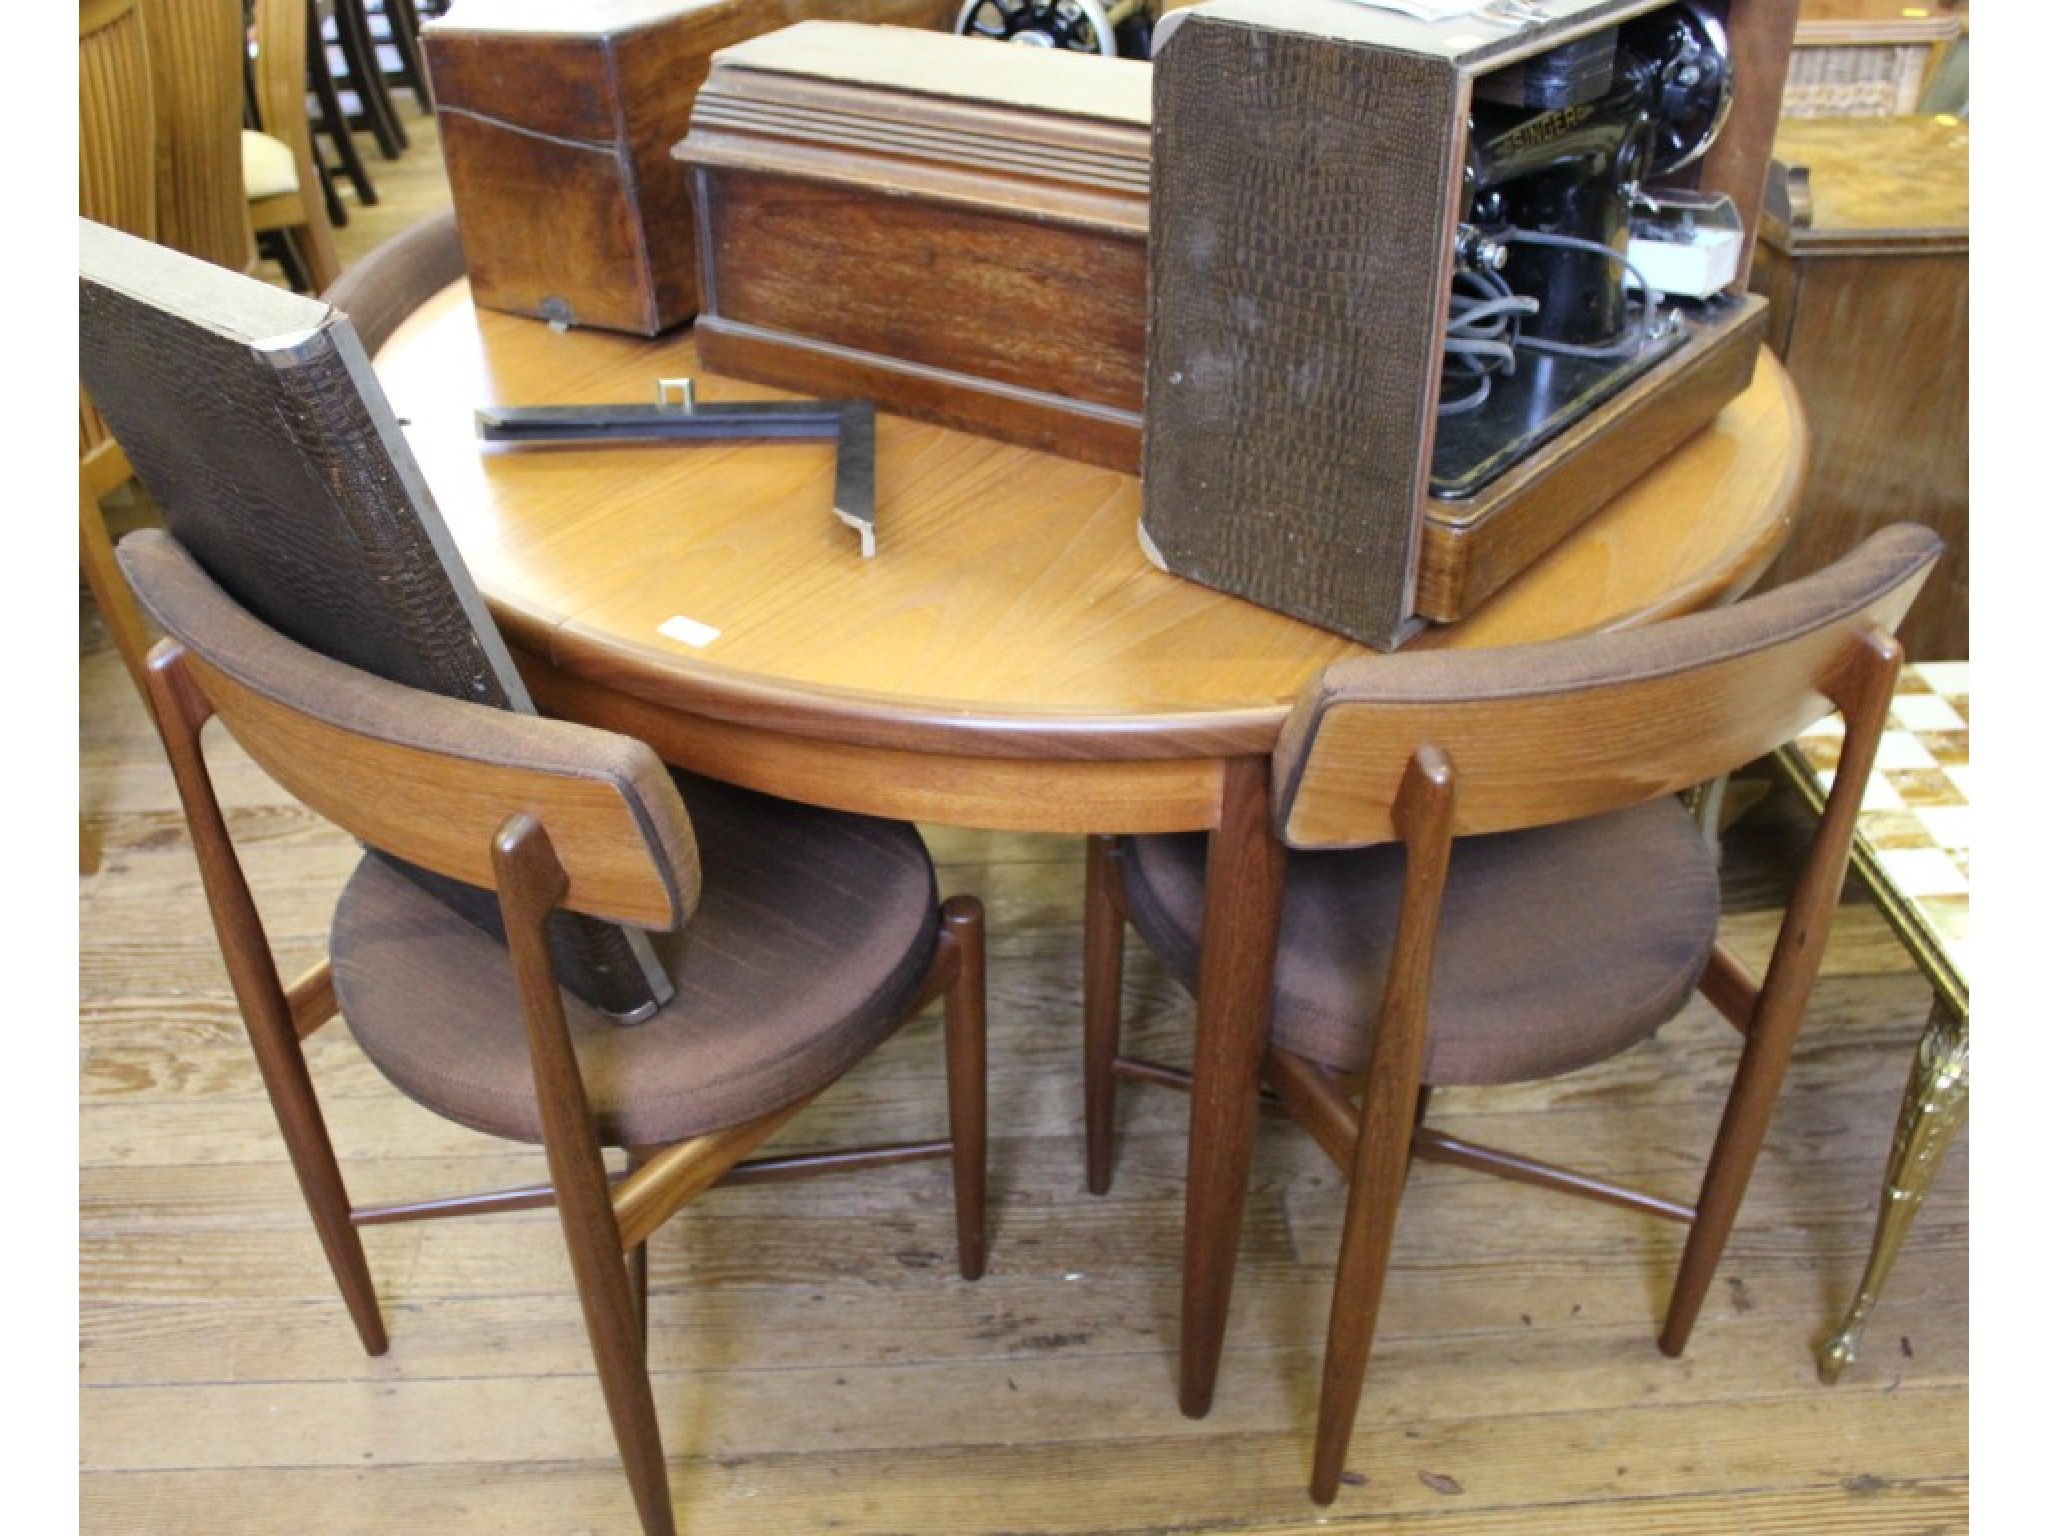 A set of four G-Plan teak chairs with padded backs and seats, and a circular extending dining table